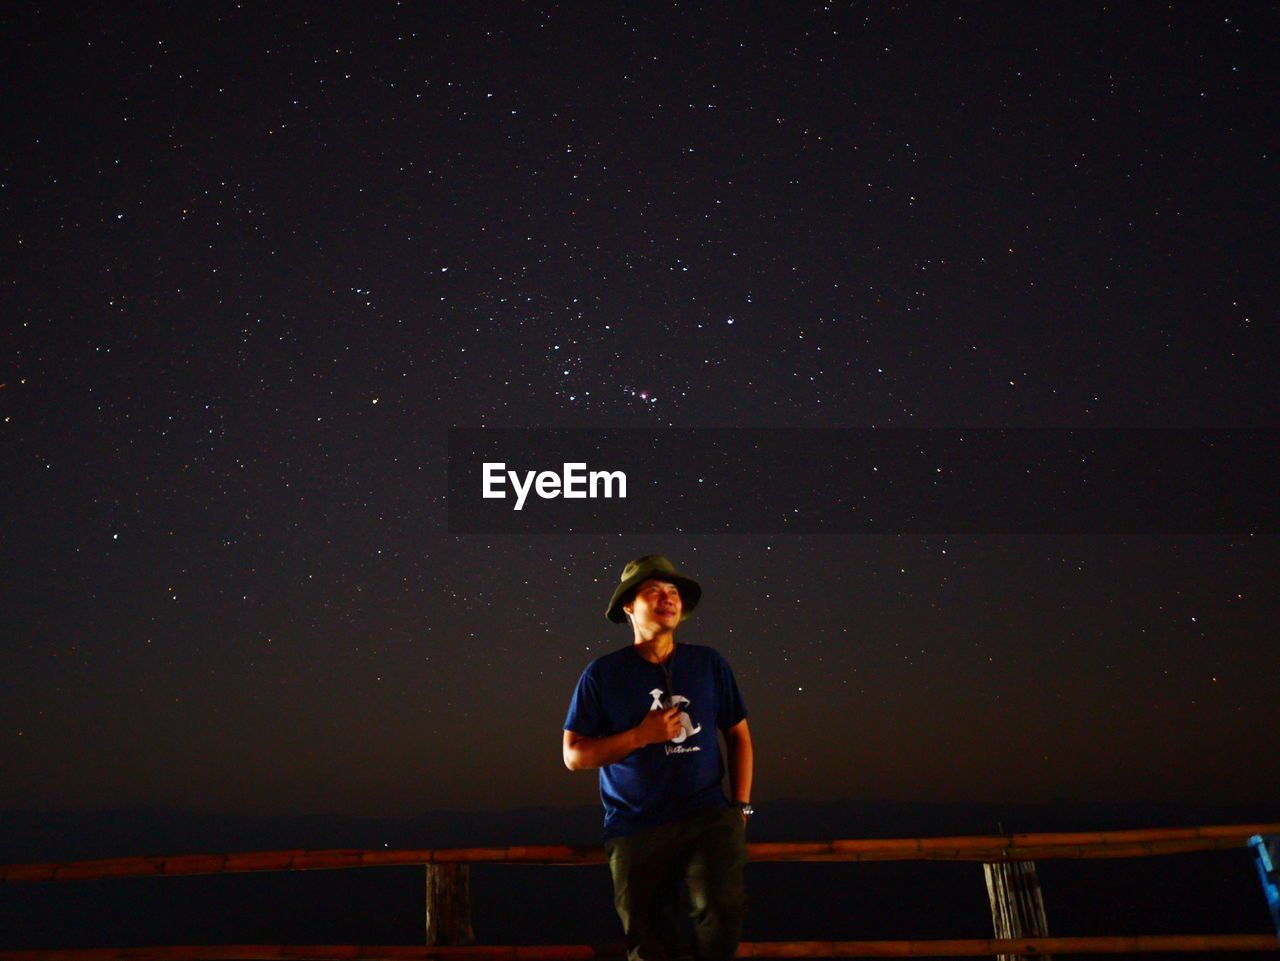 Full length of young man standing against sky at night